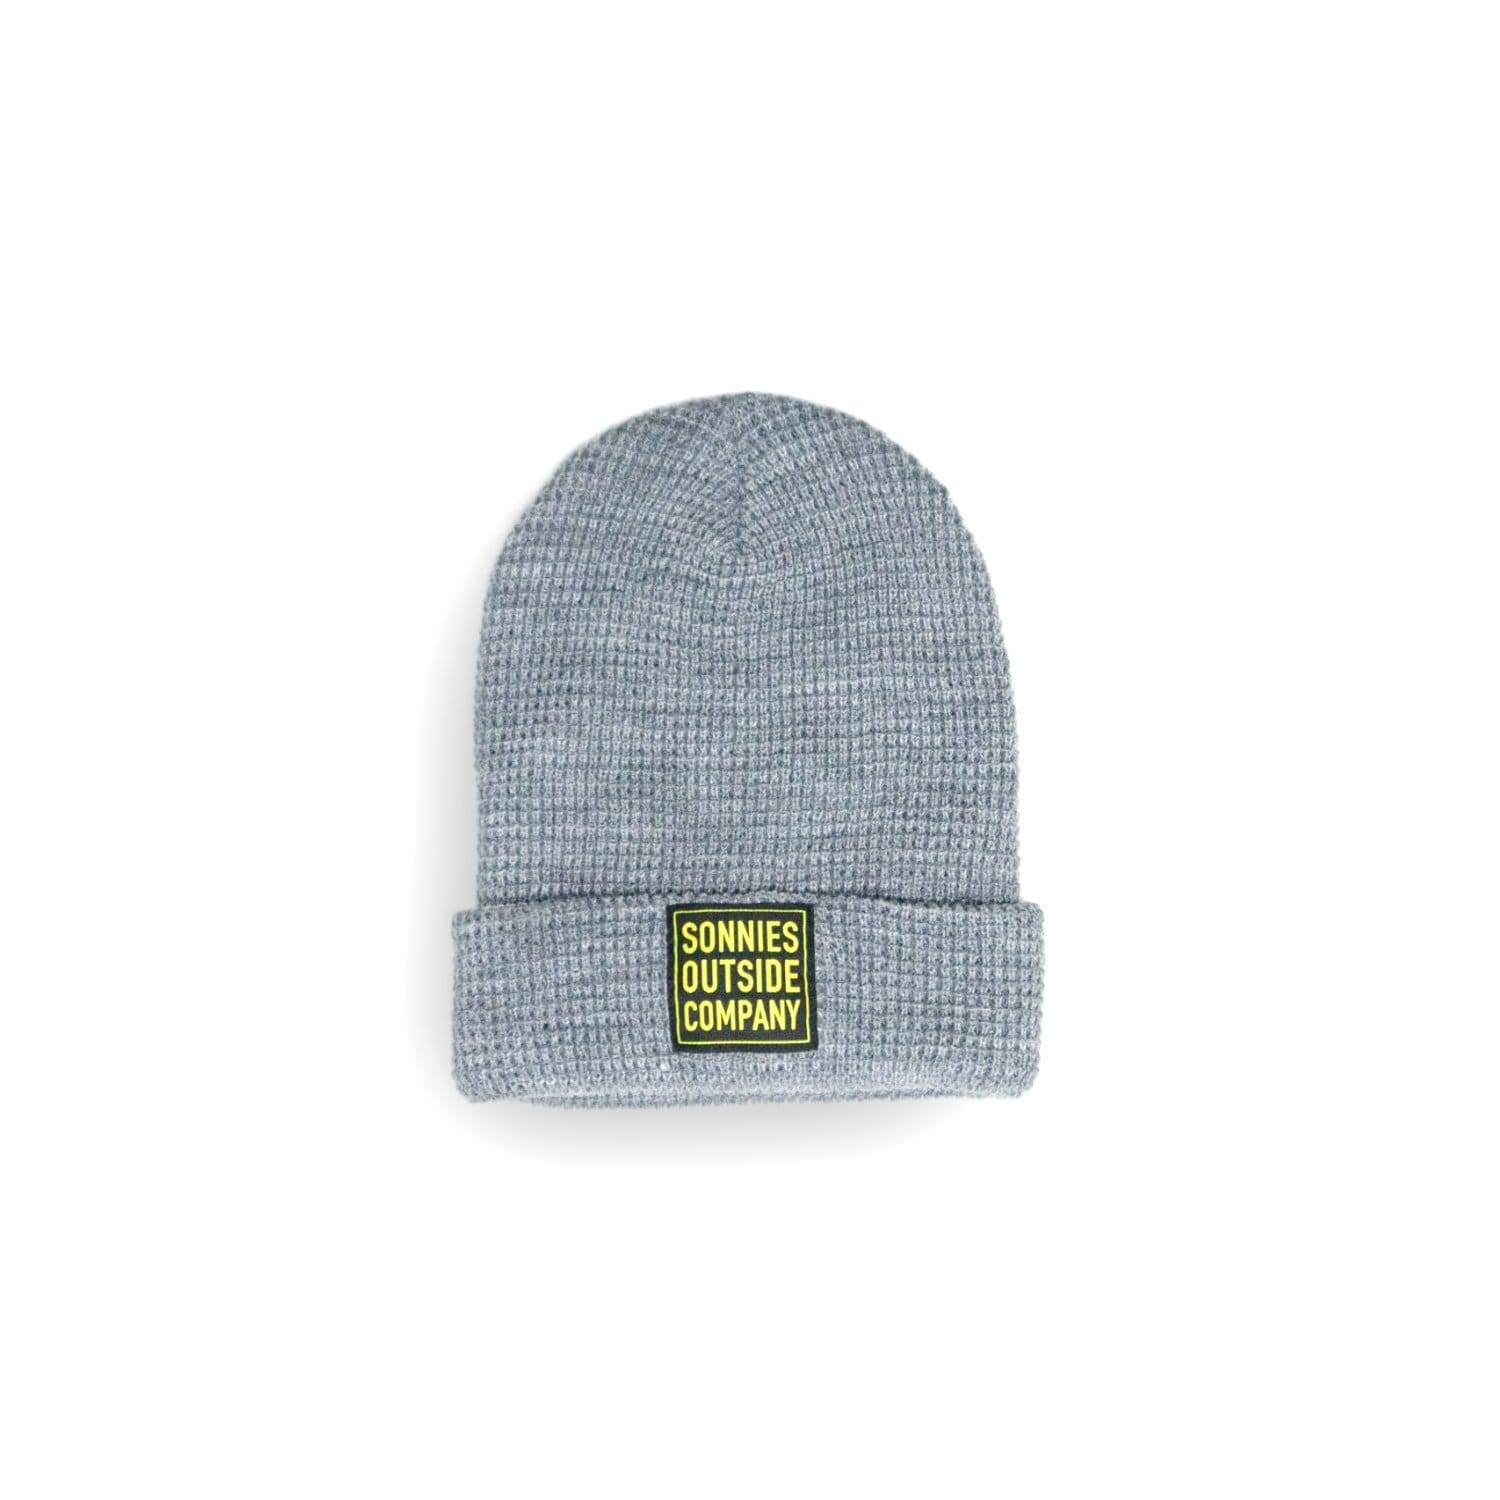 Sonnies Outside HIking Clothes - Grey Beanie Boggin Cap